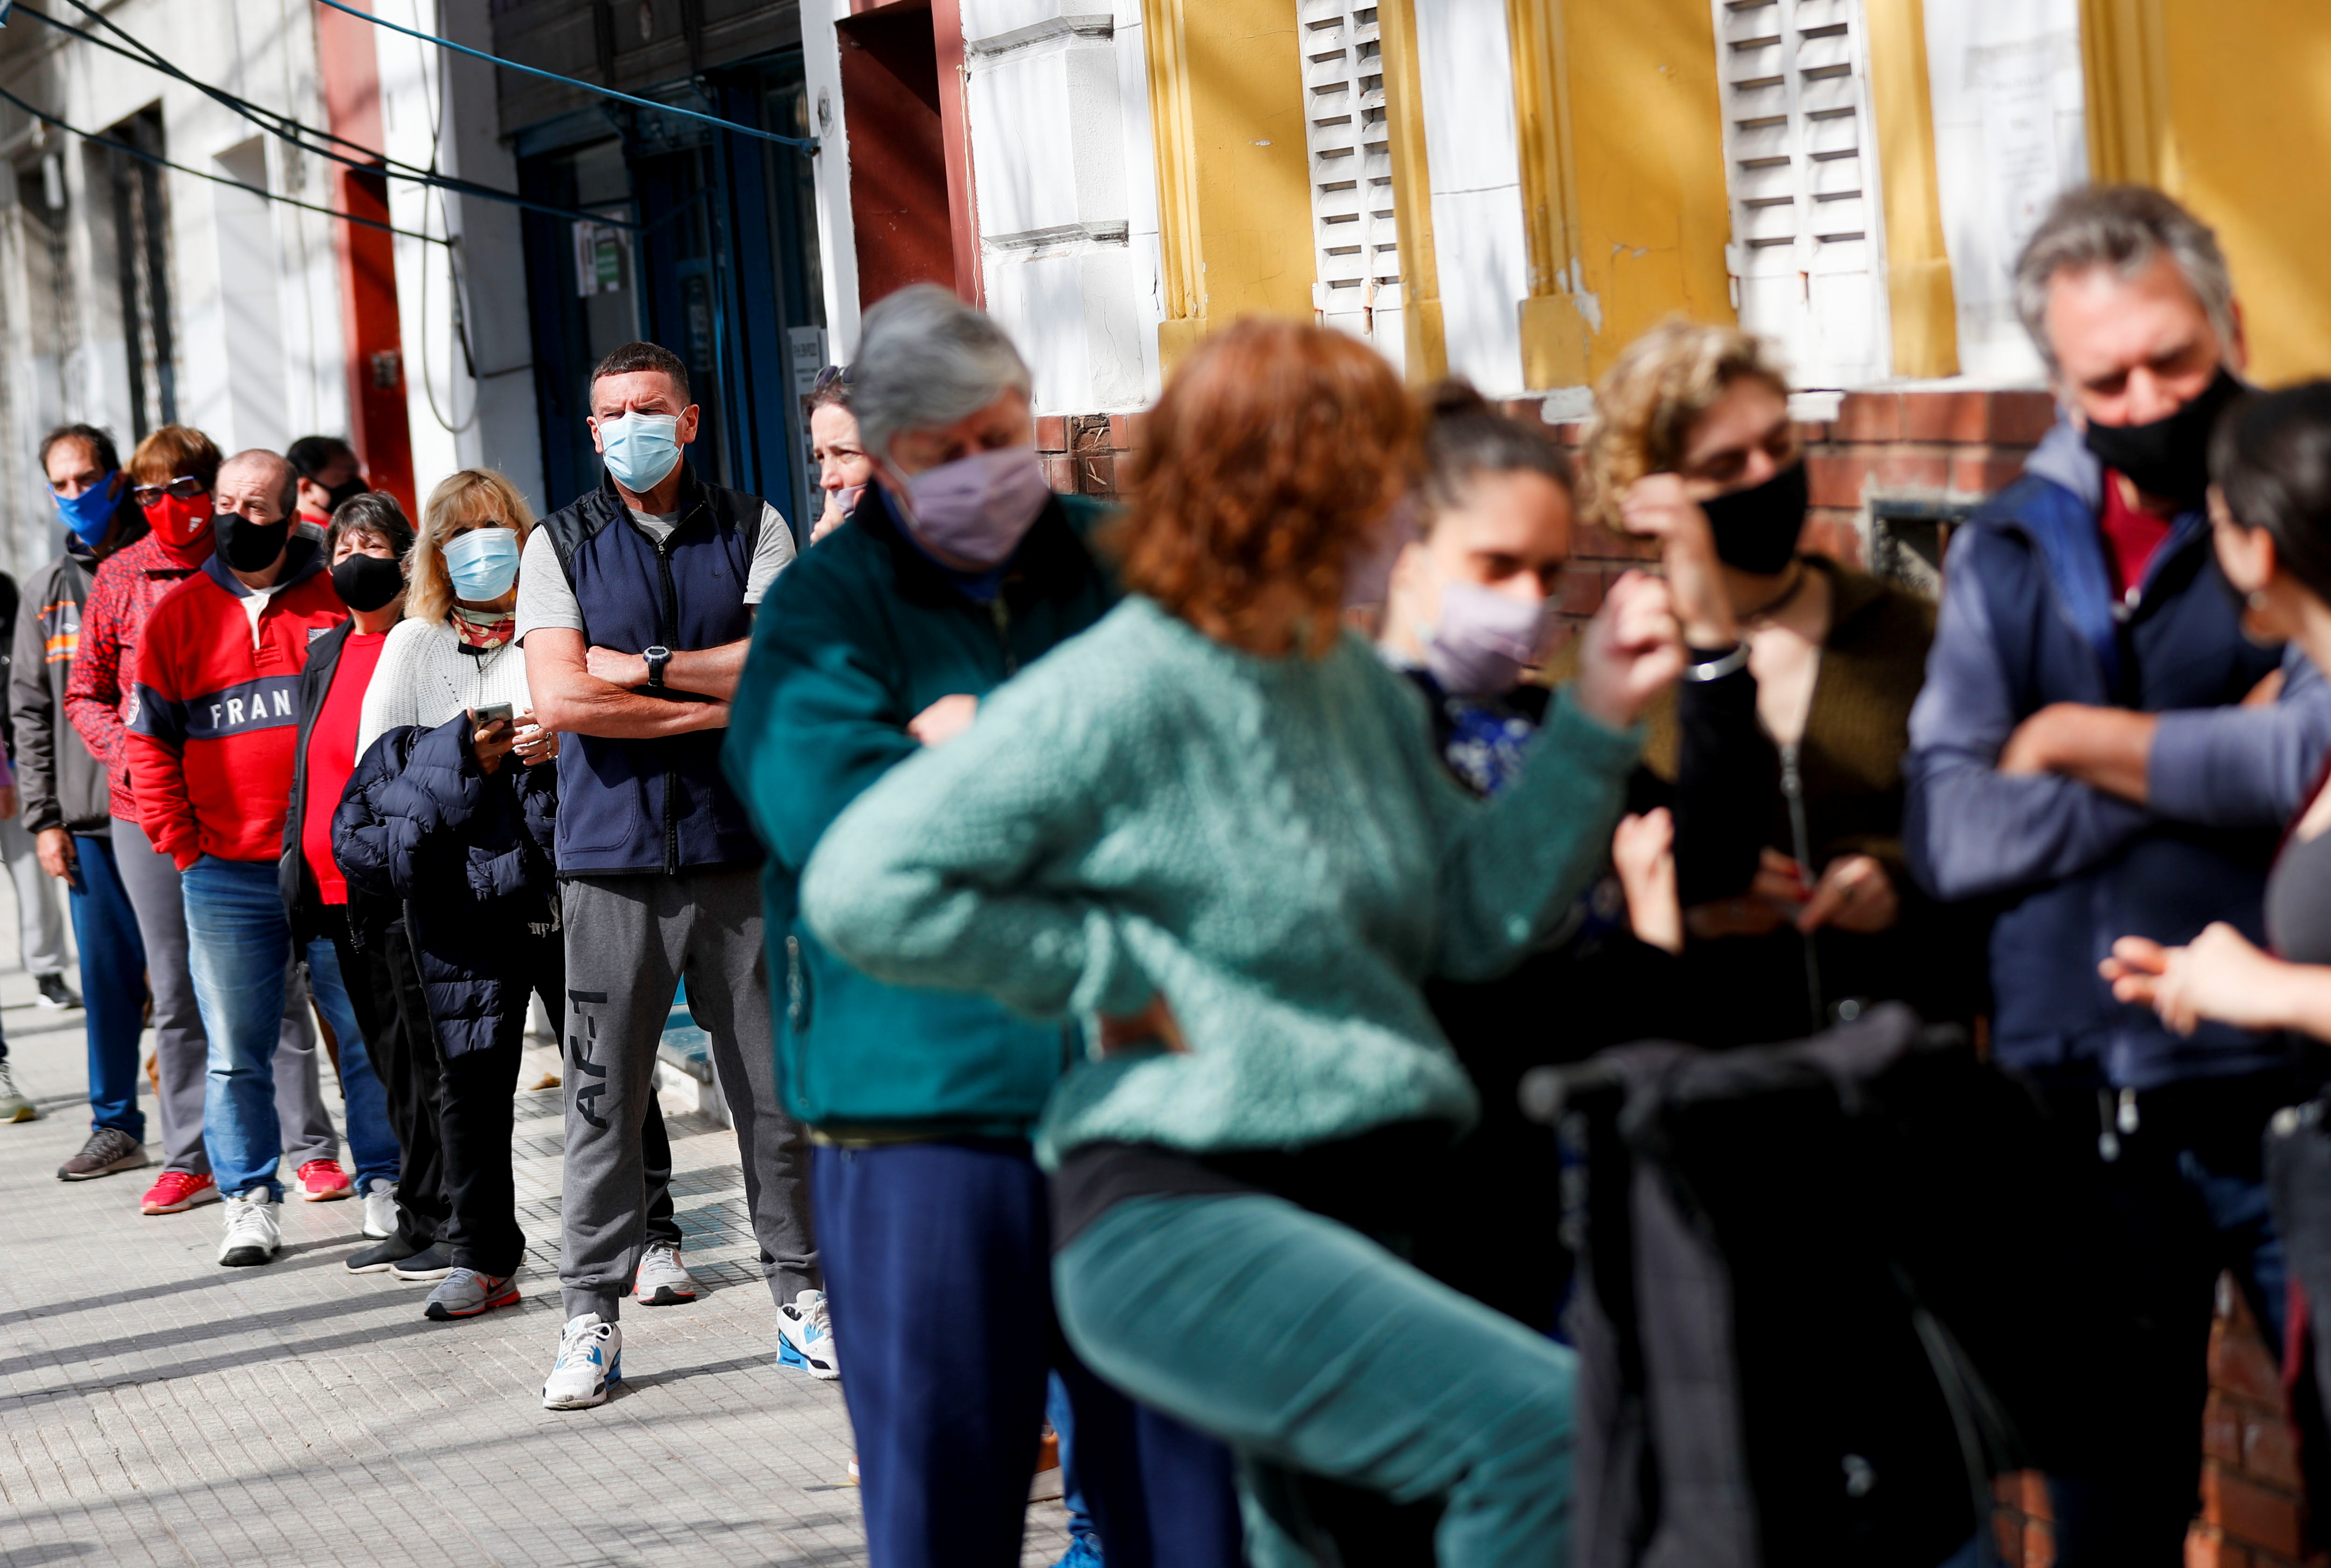 People queue outside a polling station before casting their vote during primary legislative elections, in Buenos Aires, Argentina September 12, 2021. REUTERS/Agustin Marcarian